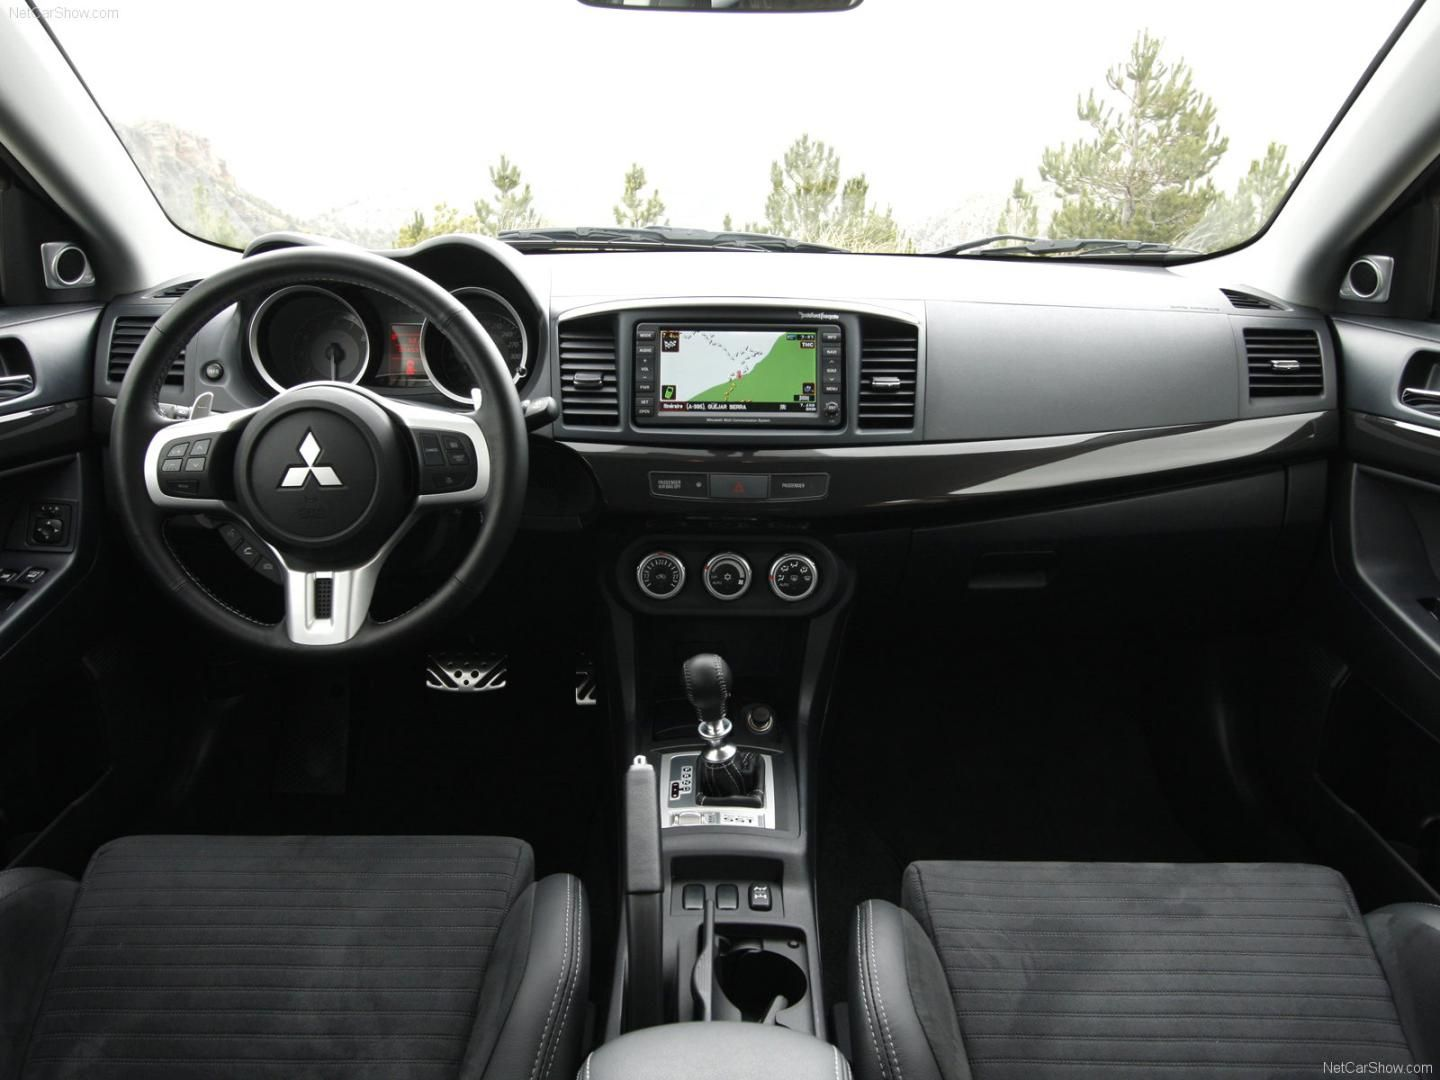 2016 Mitsubishi Lancer Evolution Interior Dashboard